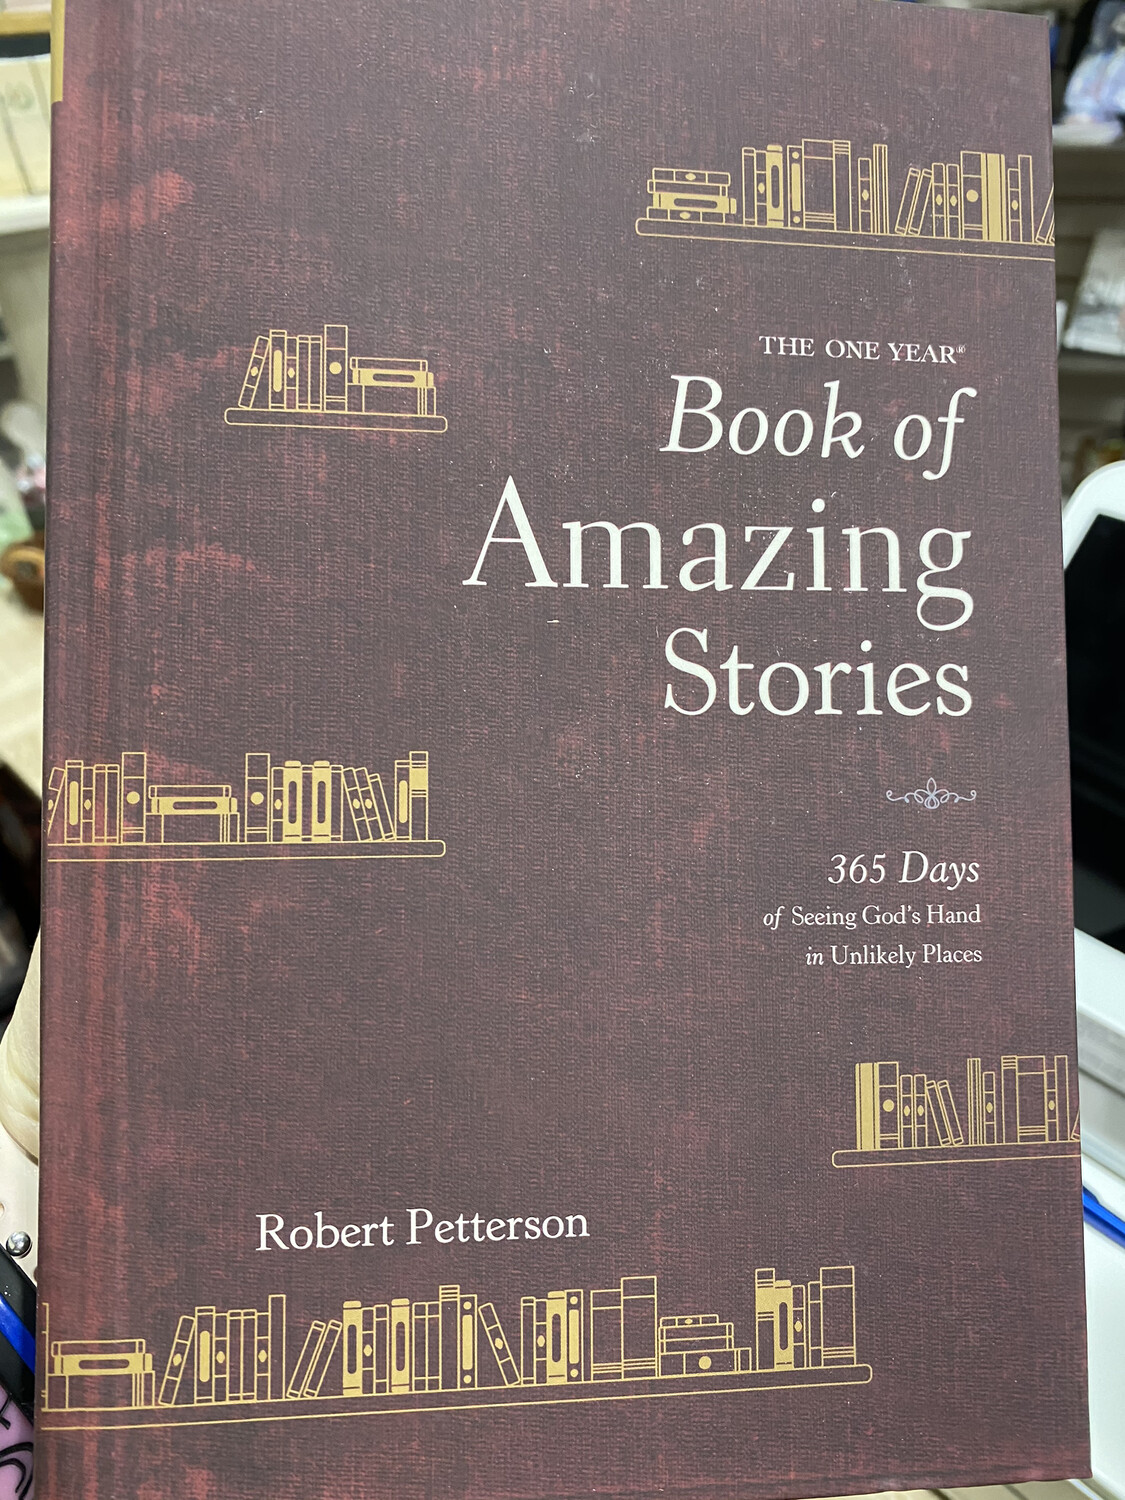 PETTERSON, The One Year Book Of Amazing Stories